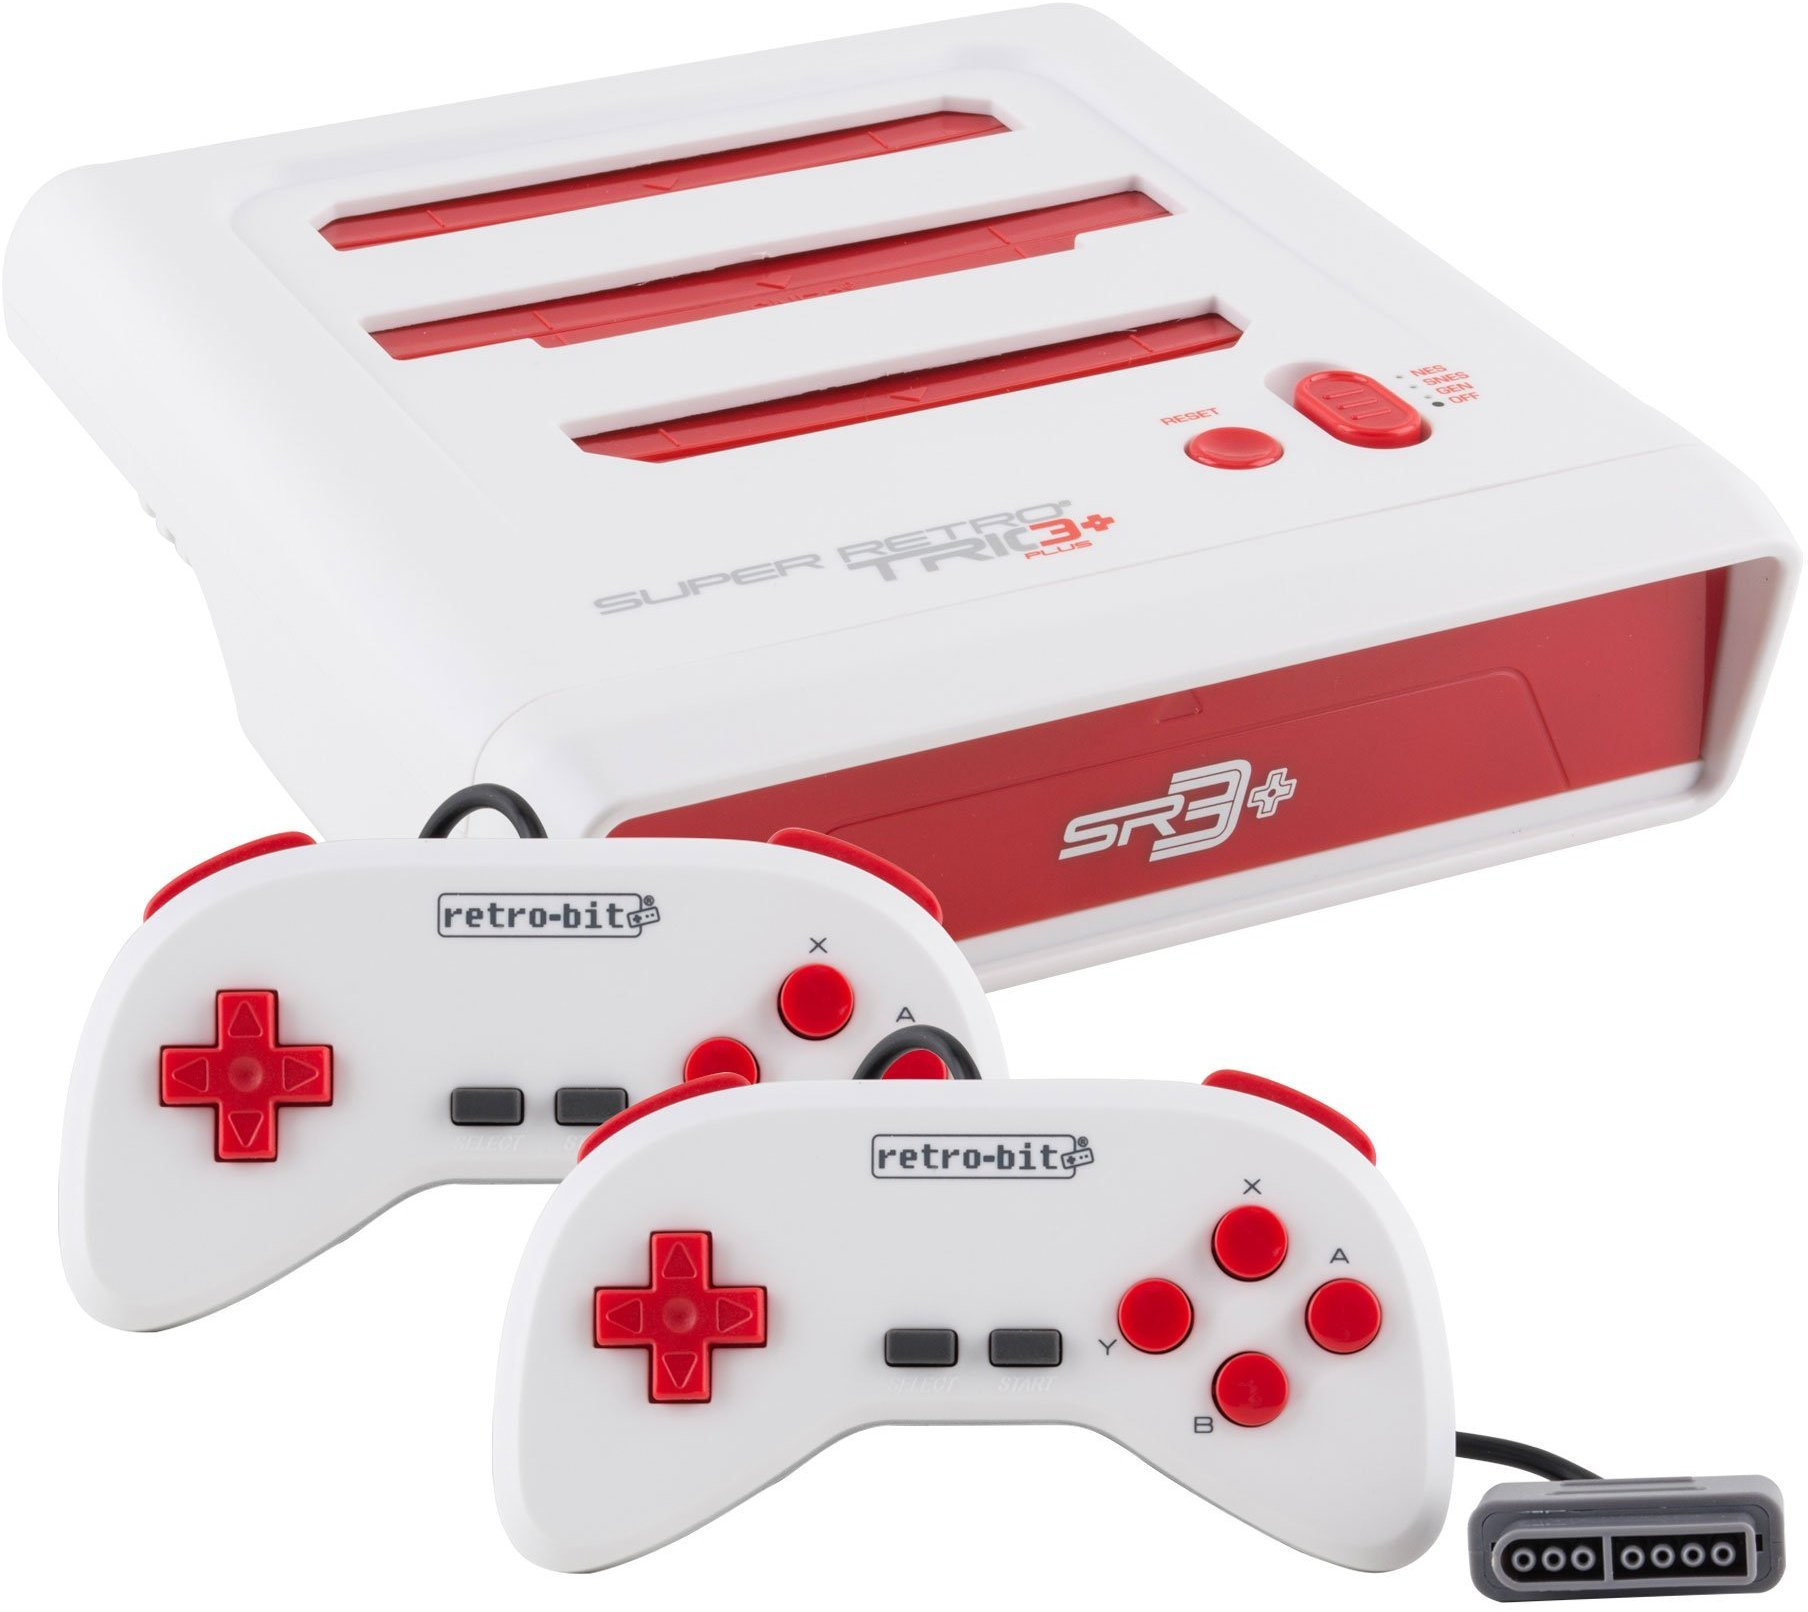 Retro-Bit Super Retro Trio HD Plus 720P 3 in 1 Console System (2019) Bundle with 1-Year Warranty from Geek Theory - for NES, SNES, and Sega Genesis Original Game Cartridges - Red/White by Geek Theory (Image #2)